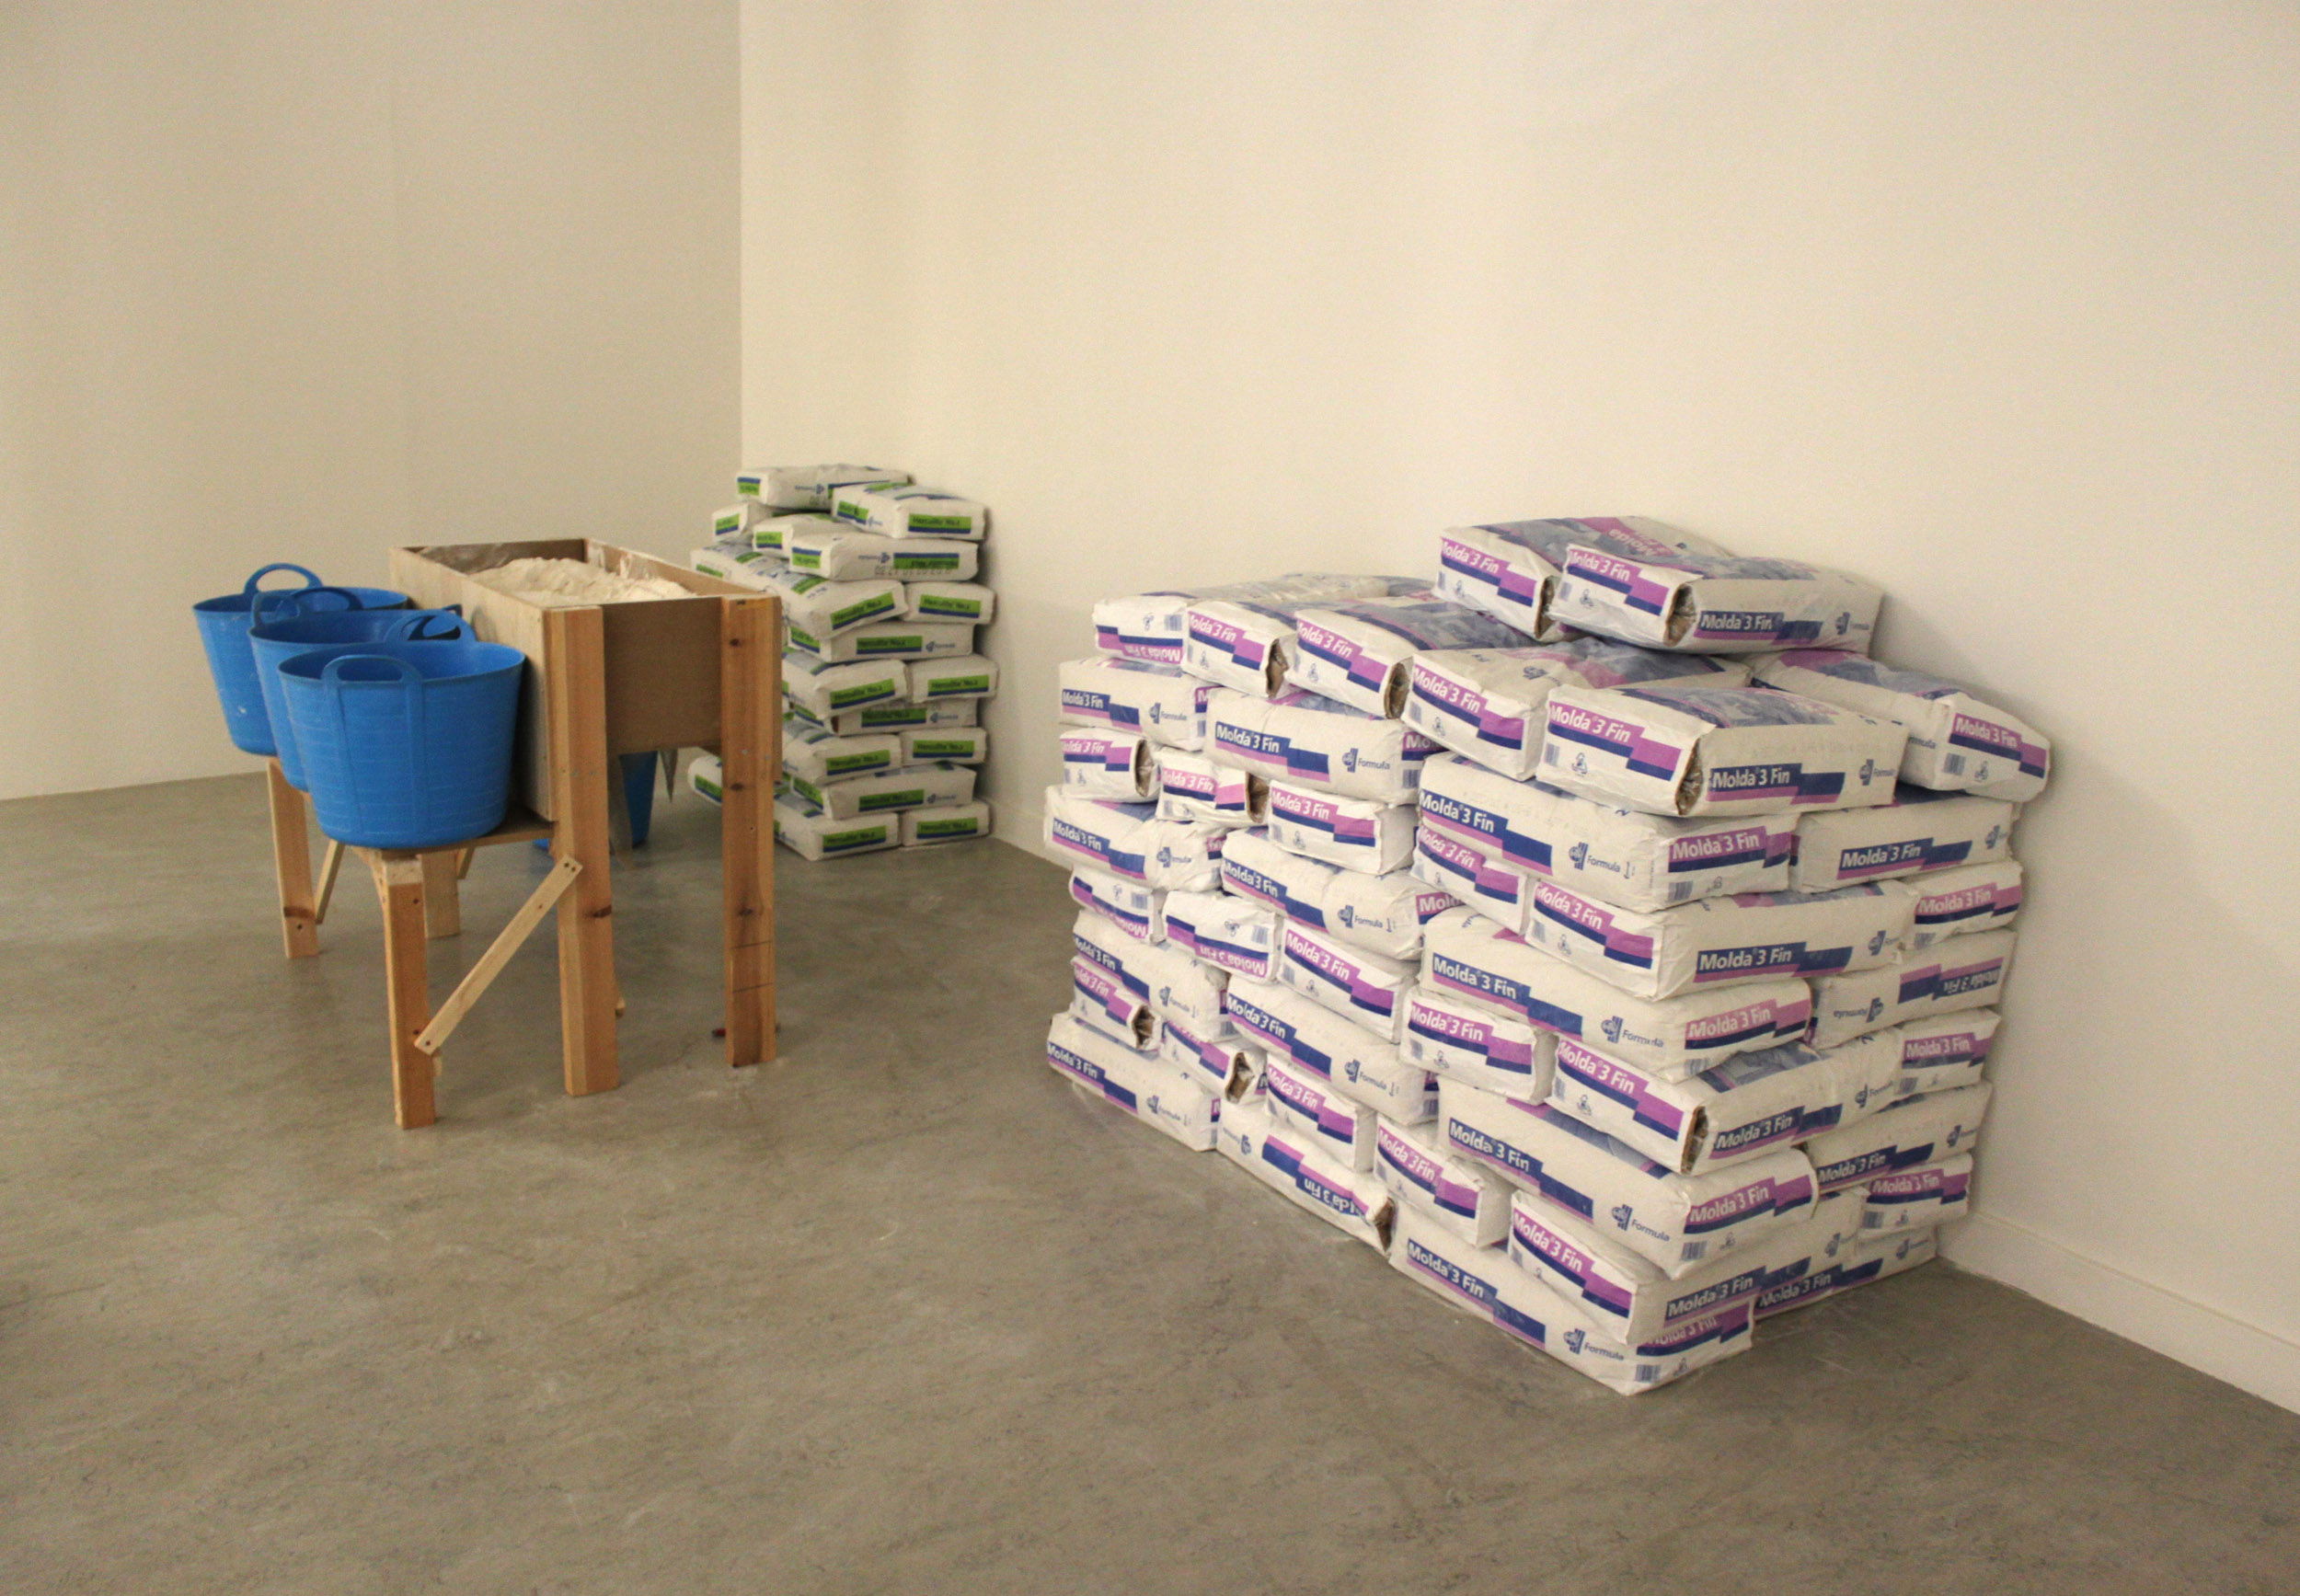 3 tonnes of plaster ready to be mixed by hand in the plaster mixing station